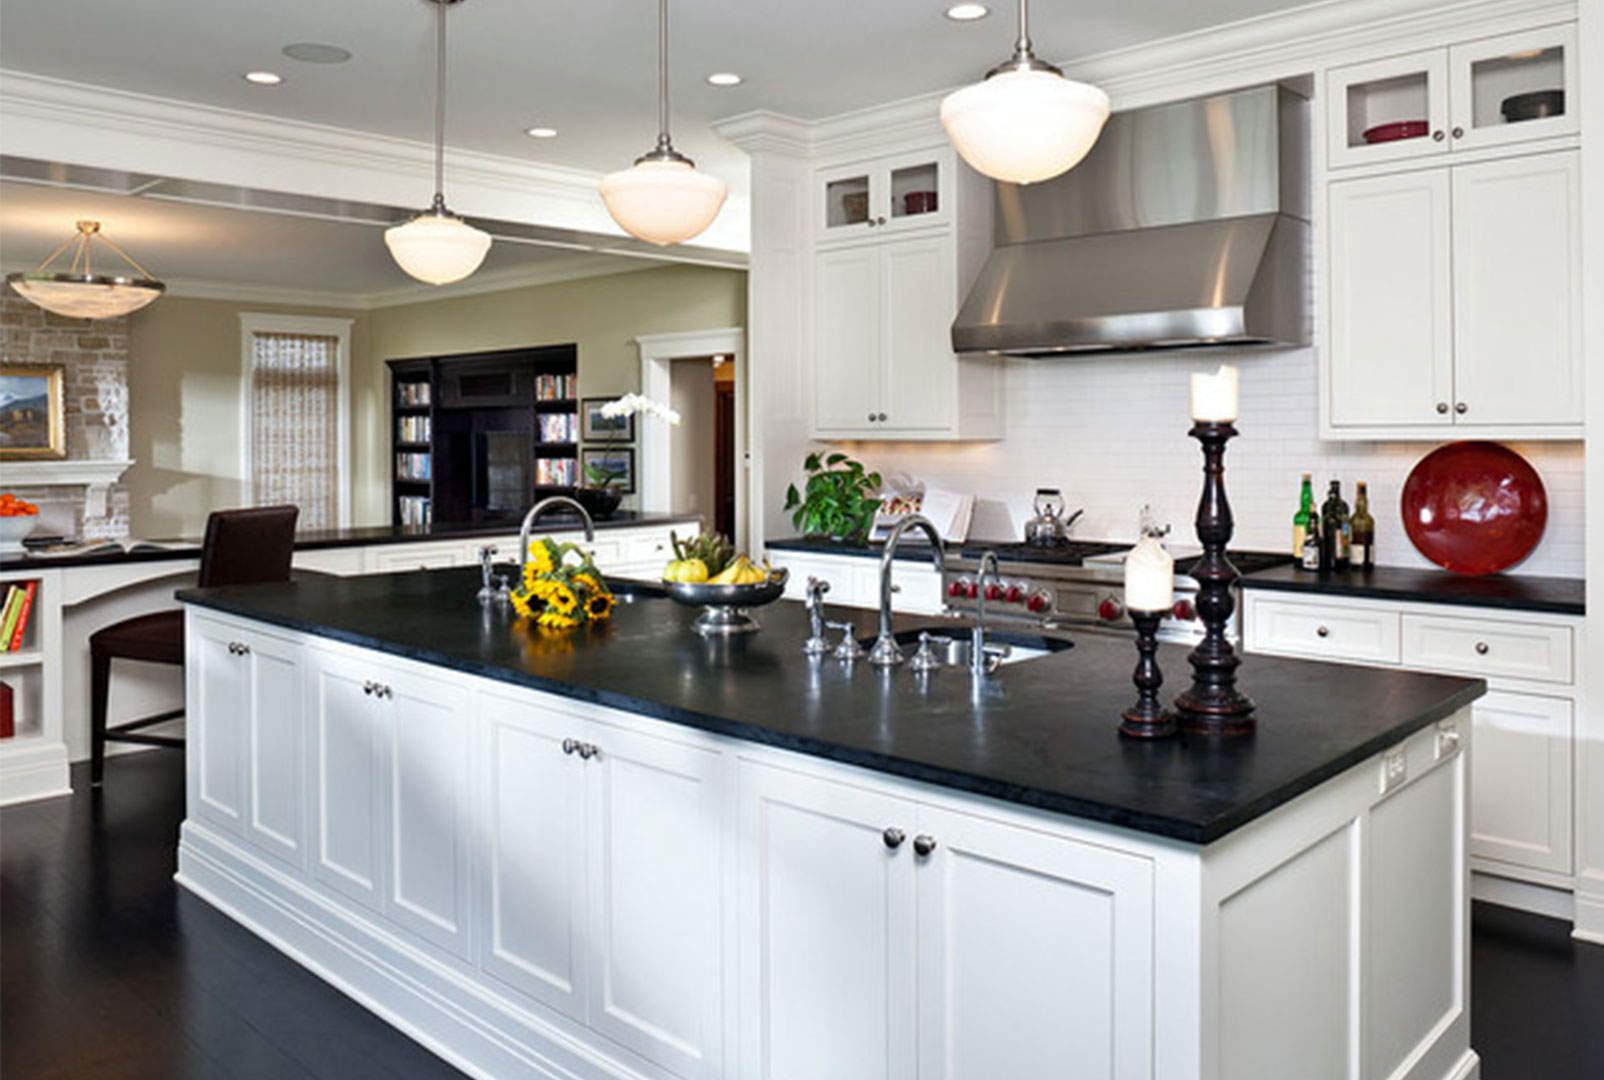 Ideas For The Kitchen Design ~ Take your kitchen to next level with these modern